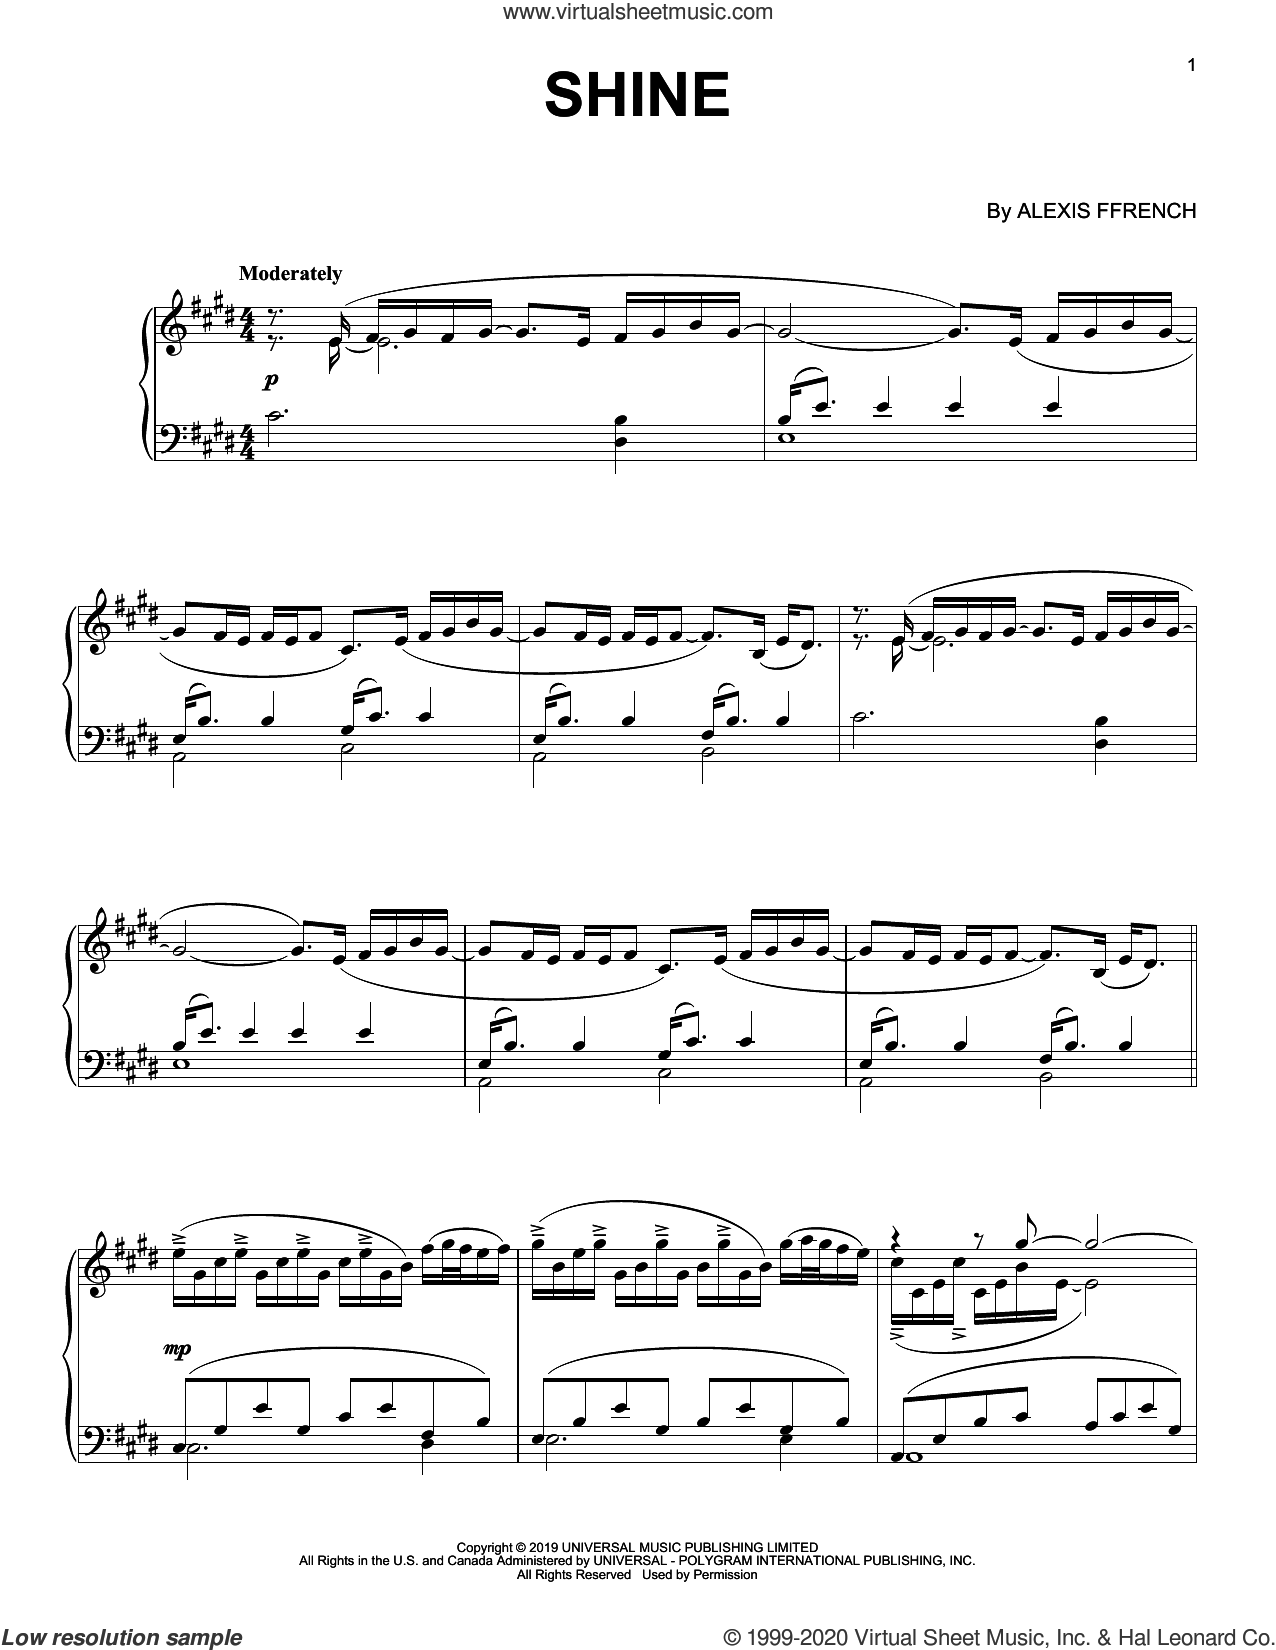 Shine sheet music for piano solo by Alexis Ffrench, intermediate skill level